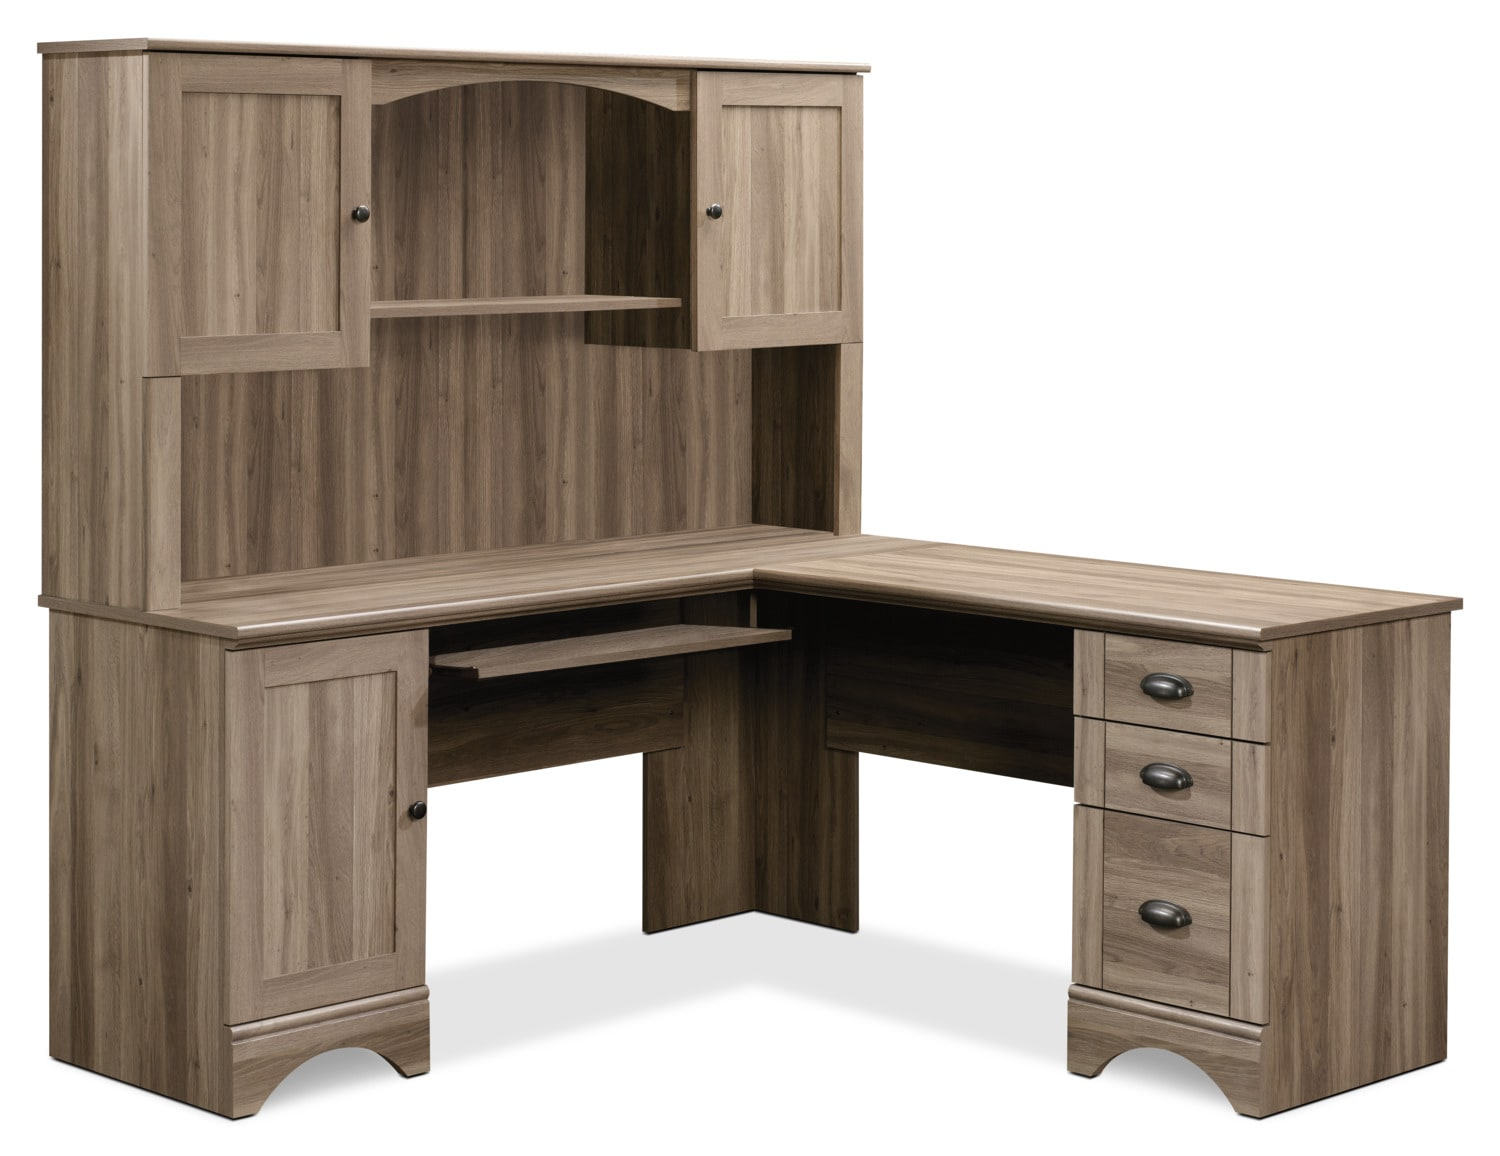 Harbor View Corner Desk with Hutch – Salt Oak